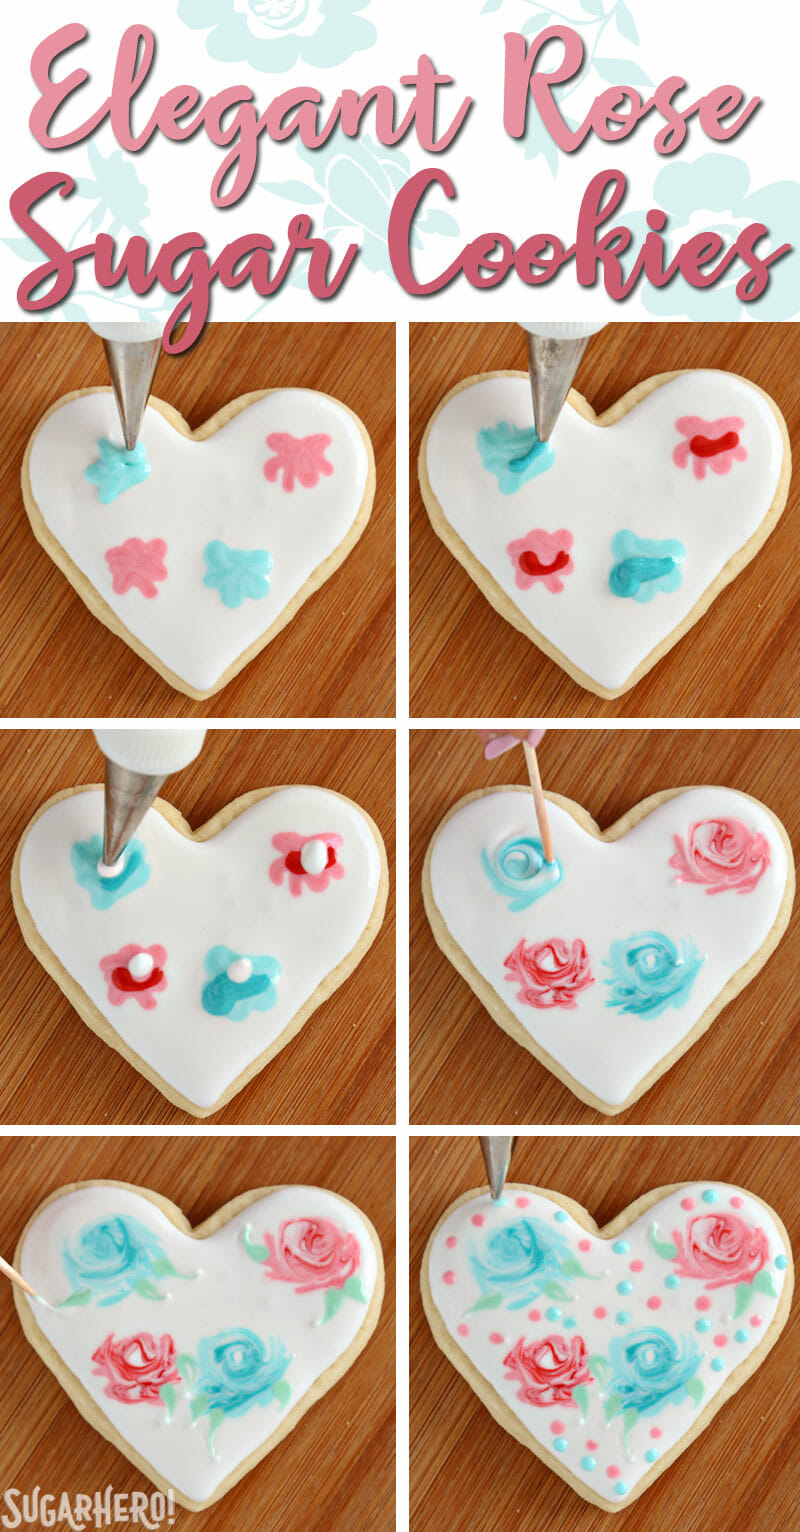 Valentine's Day Sugar Cookies - photo tutorial showing how to make an elegant rose design out of royal icing | From SugarHero.com